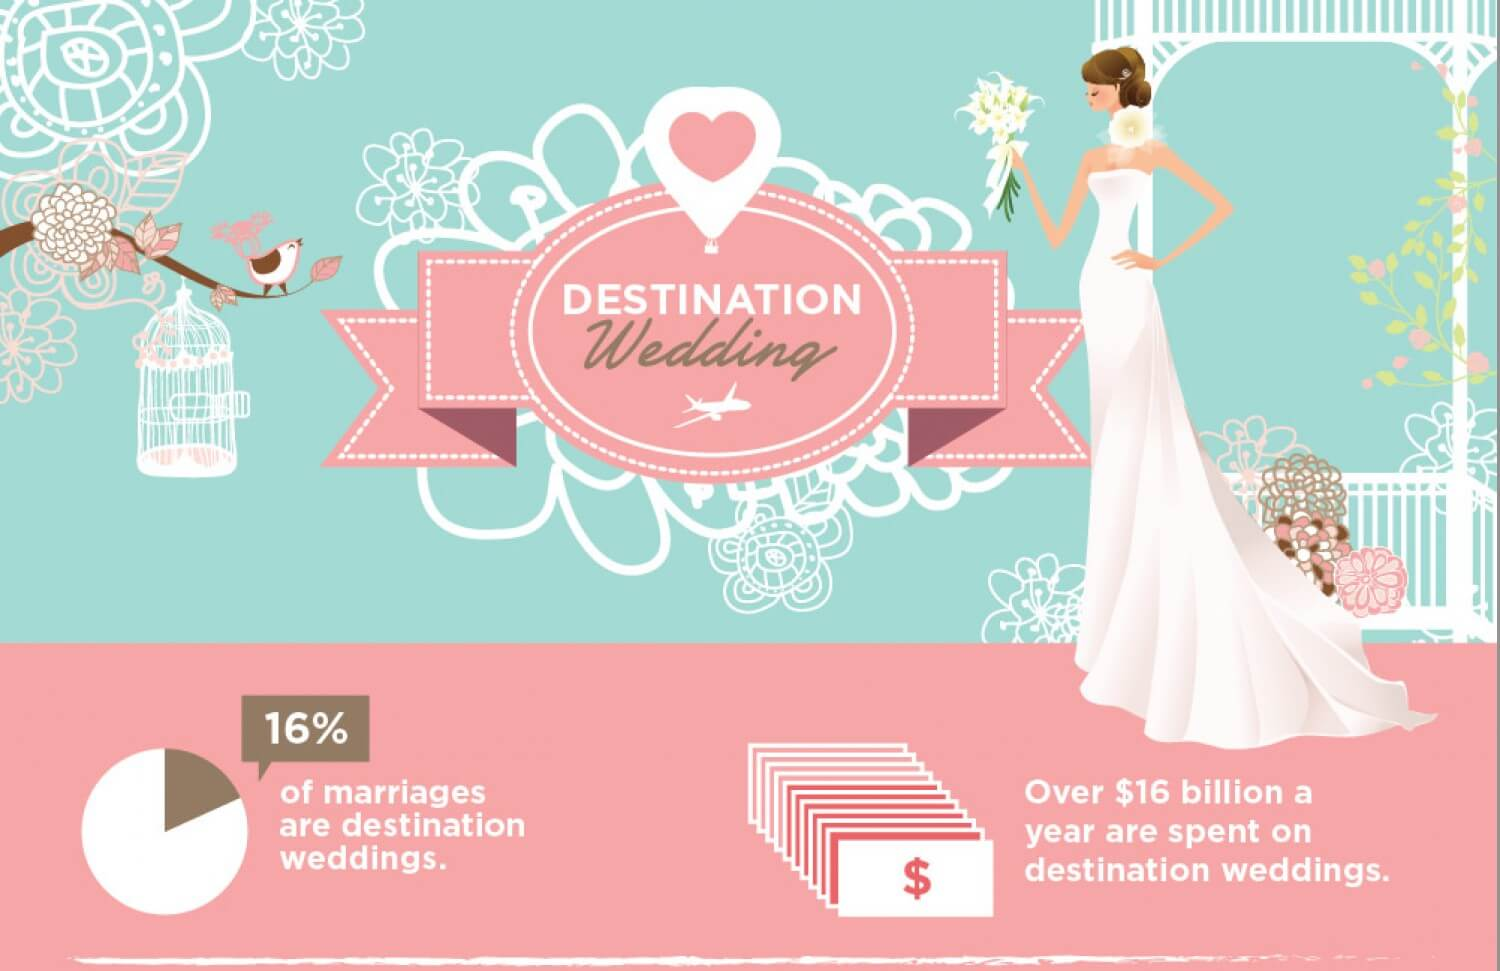 destination-wedding-ideas_budgeting costing